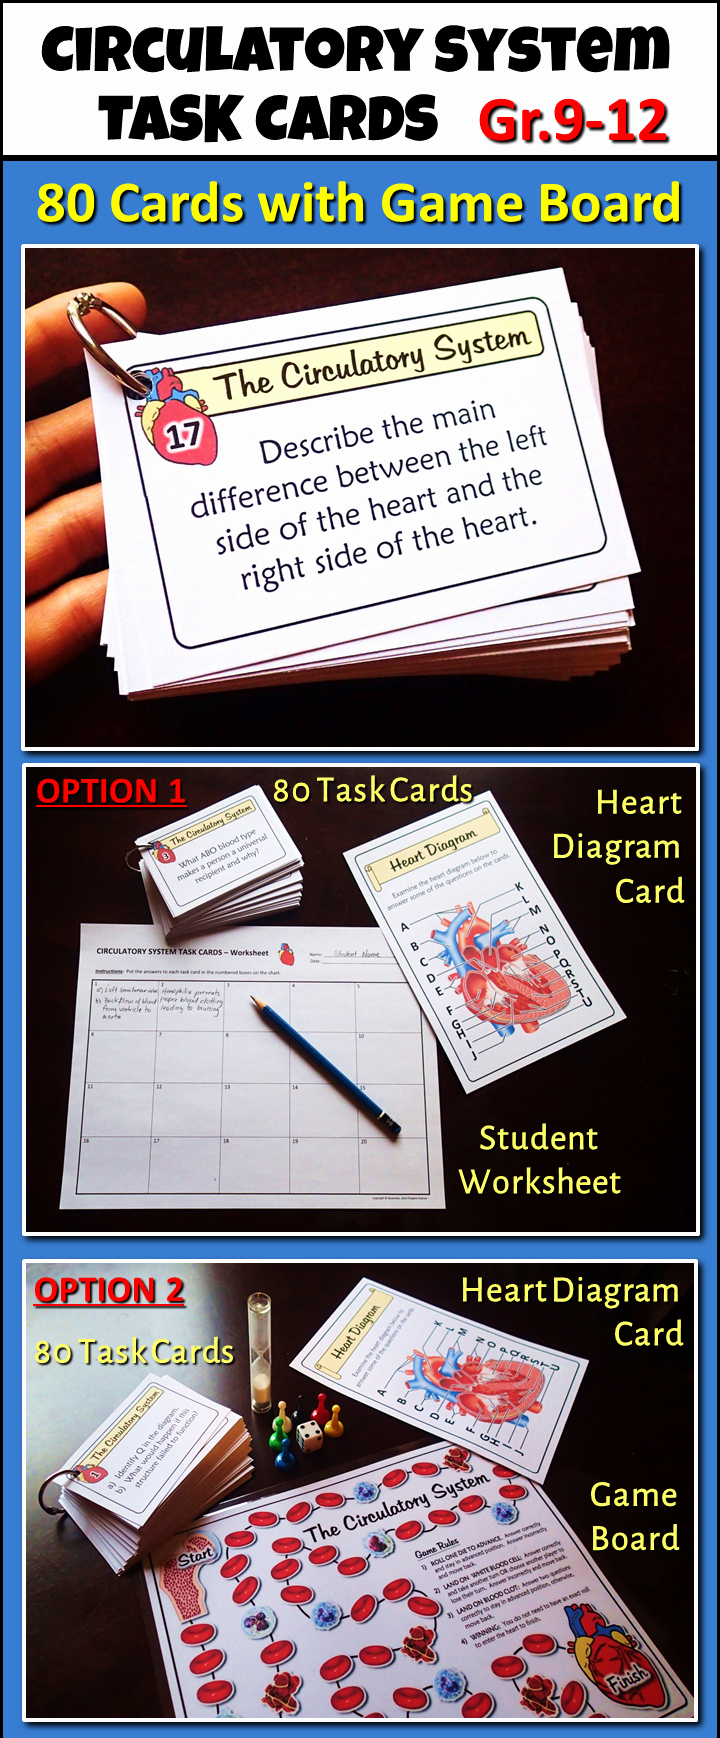 Editable Board Game Template Elegant Circulatory System Task Cards with Game Board Editable